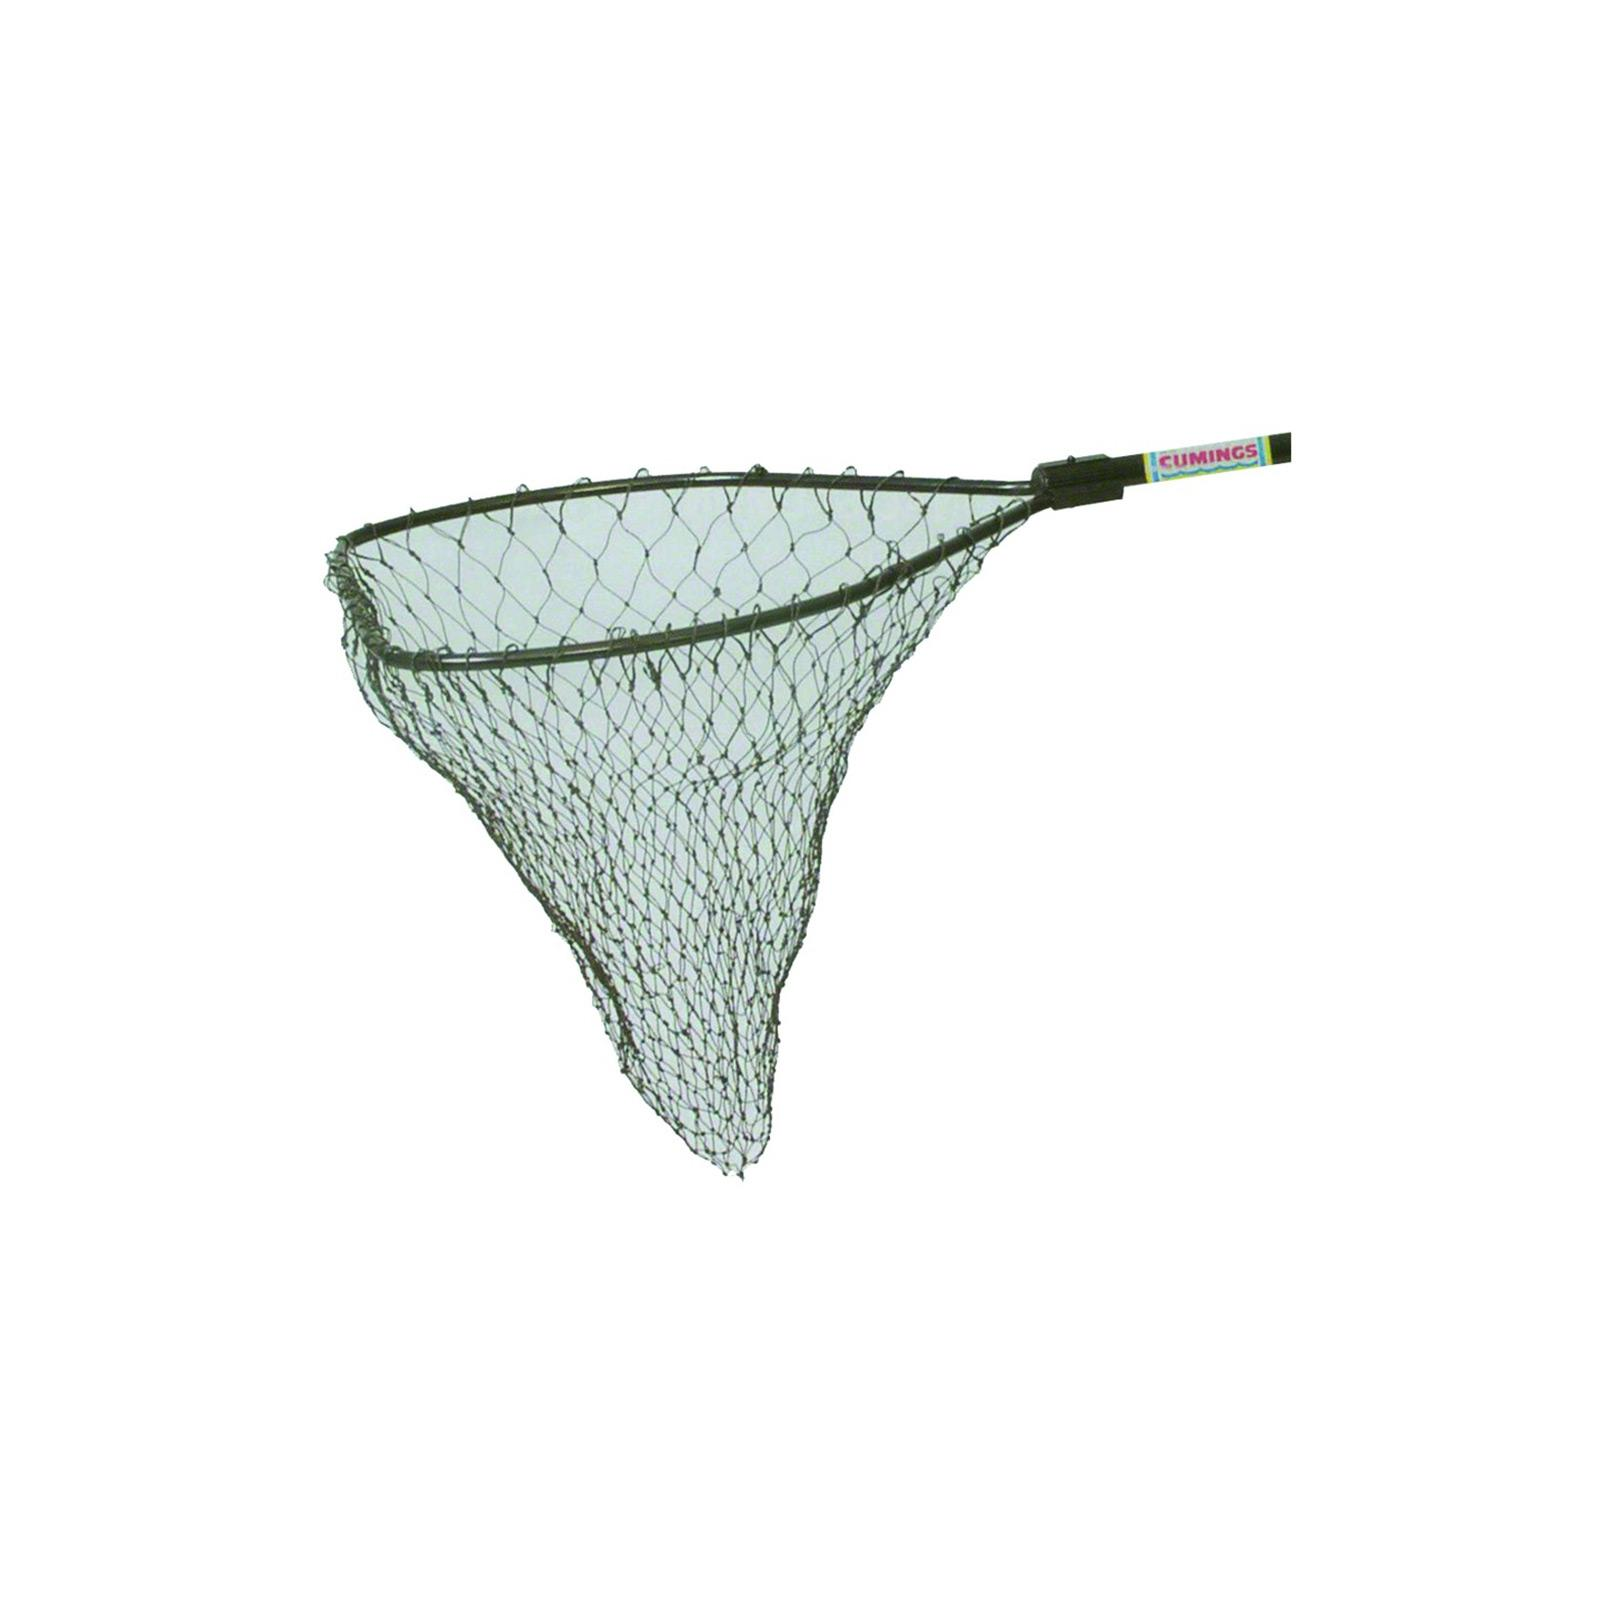 "Cumings Striper 21-1/2""x27"" Bow 36"" Length 36"" Depth, STR..."